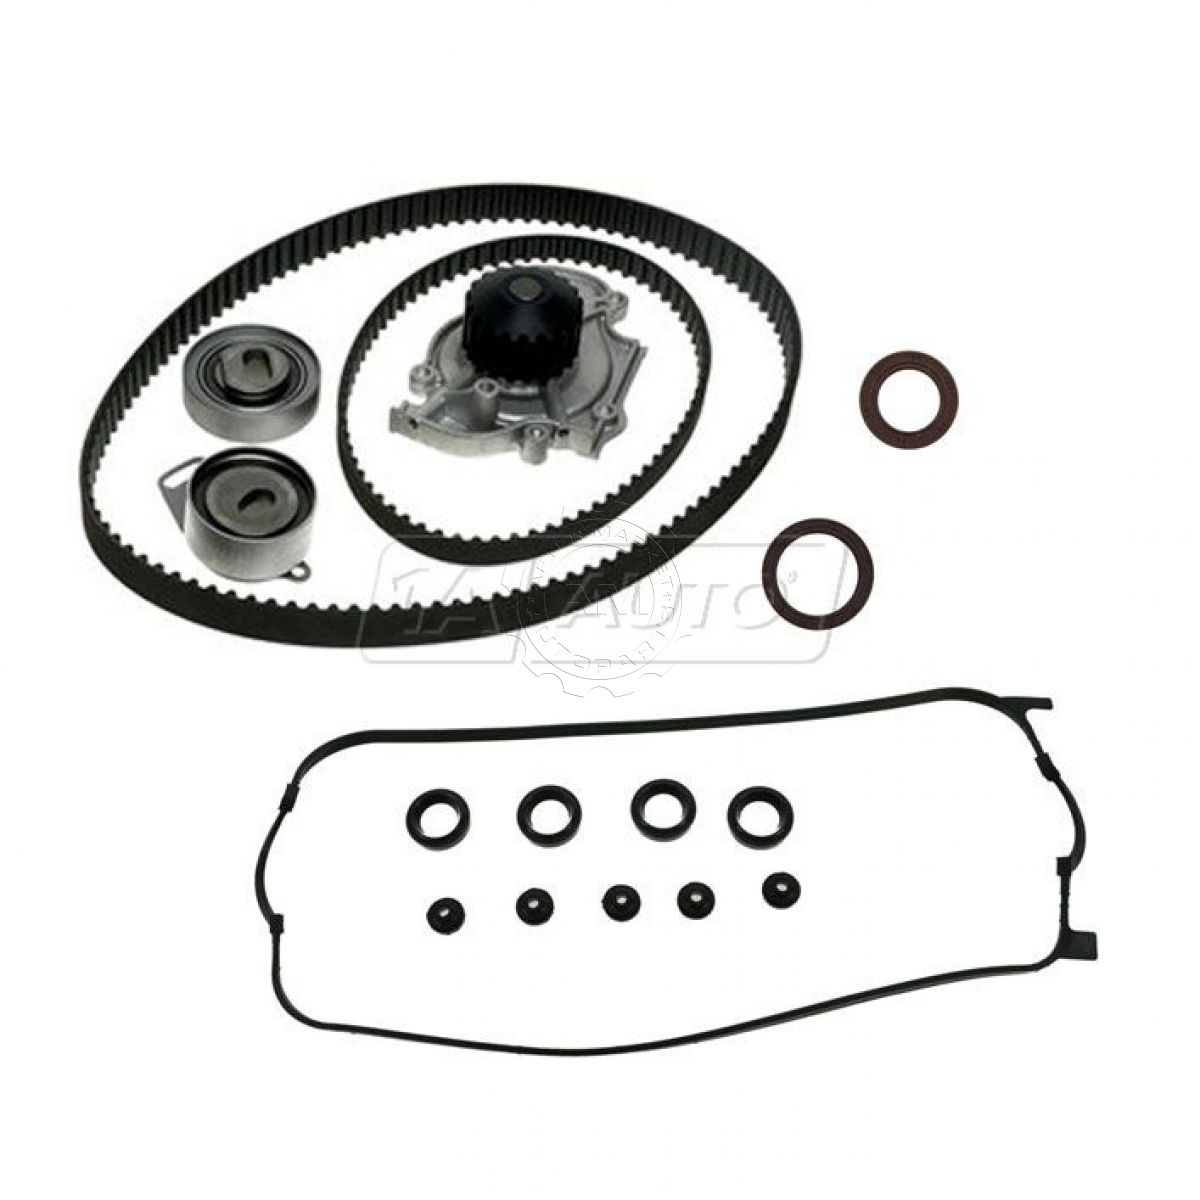 Timing Belt Water Pump Valve Cover Gasket Seals Kit Set for Accord CL  Odyssey